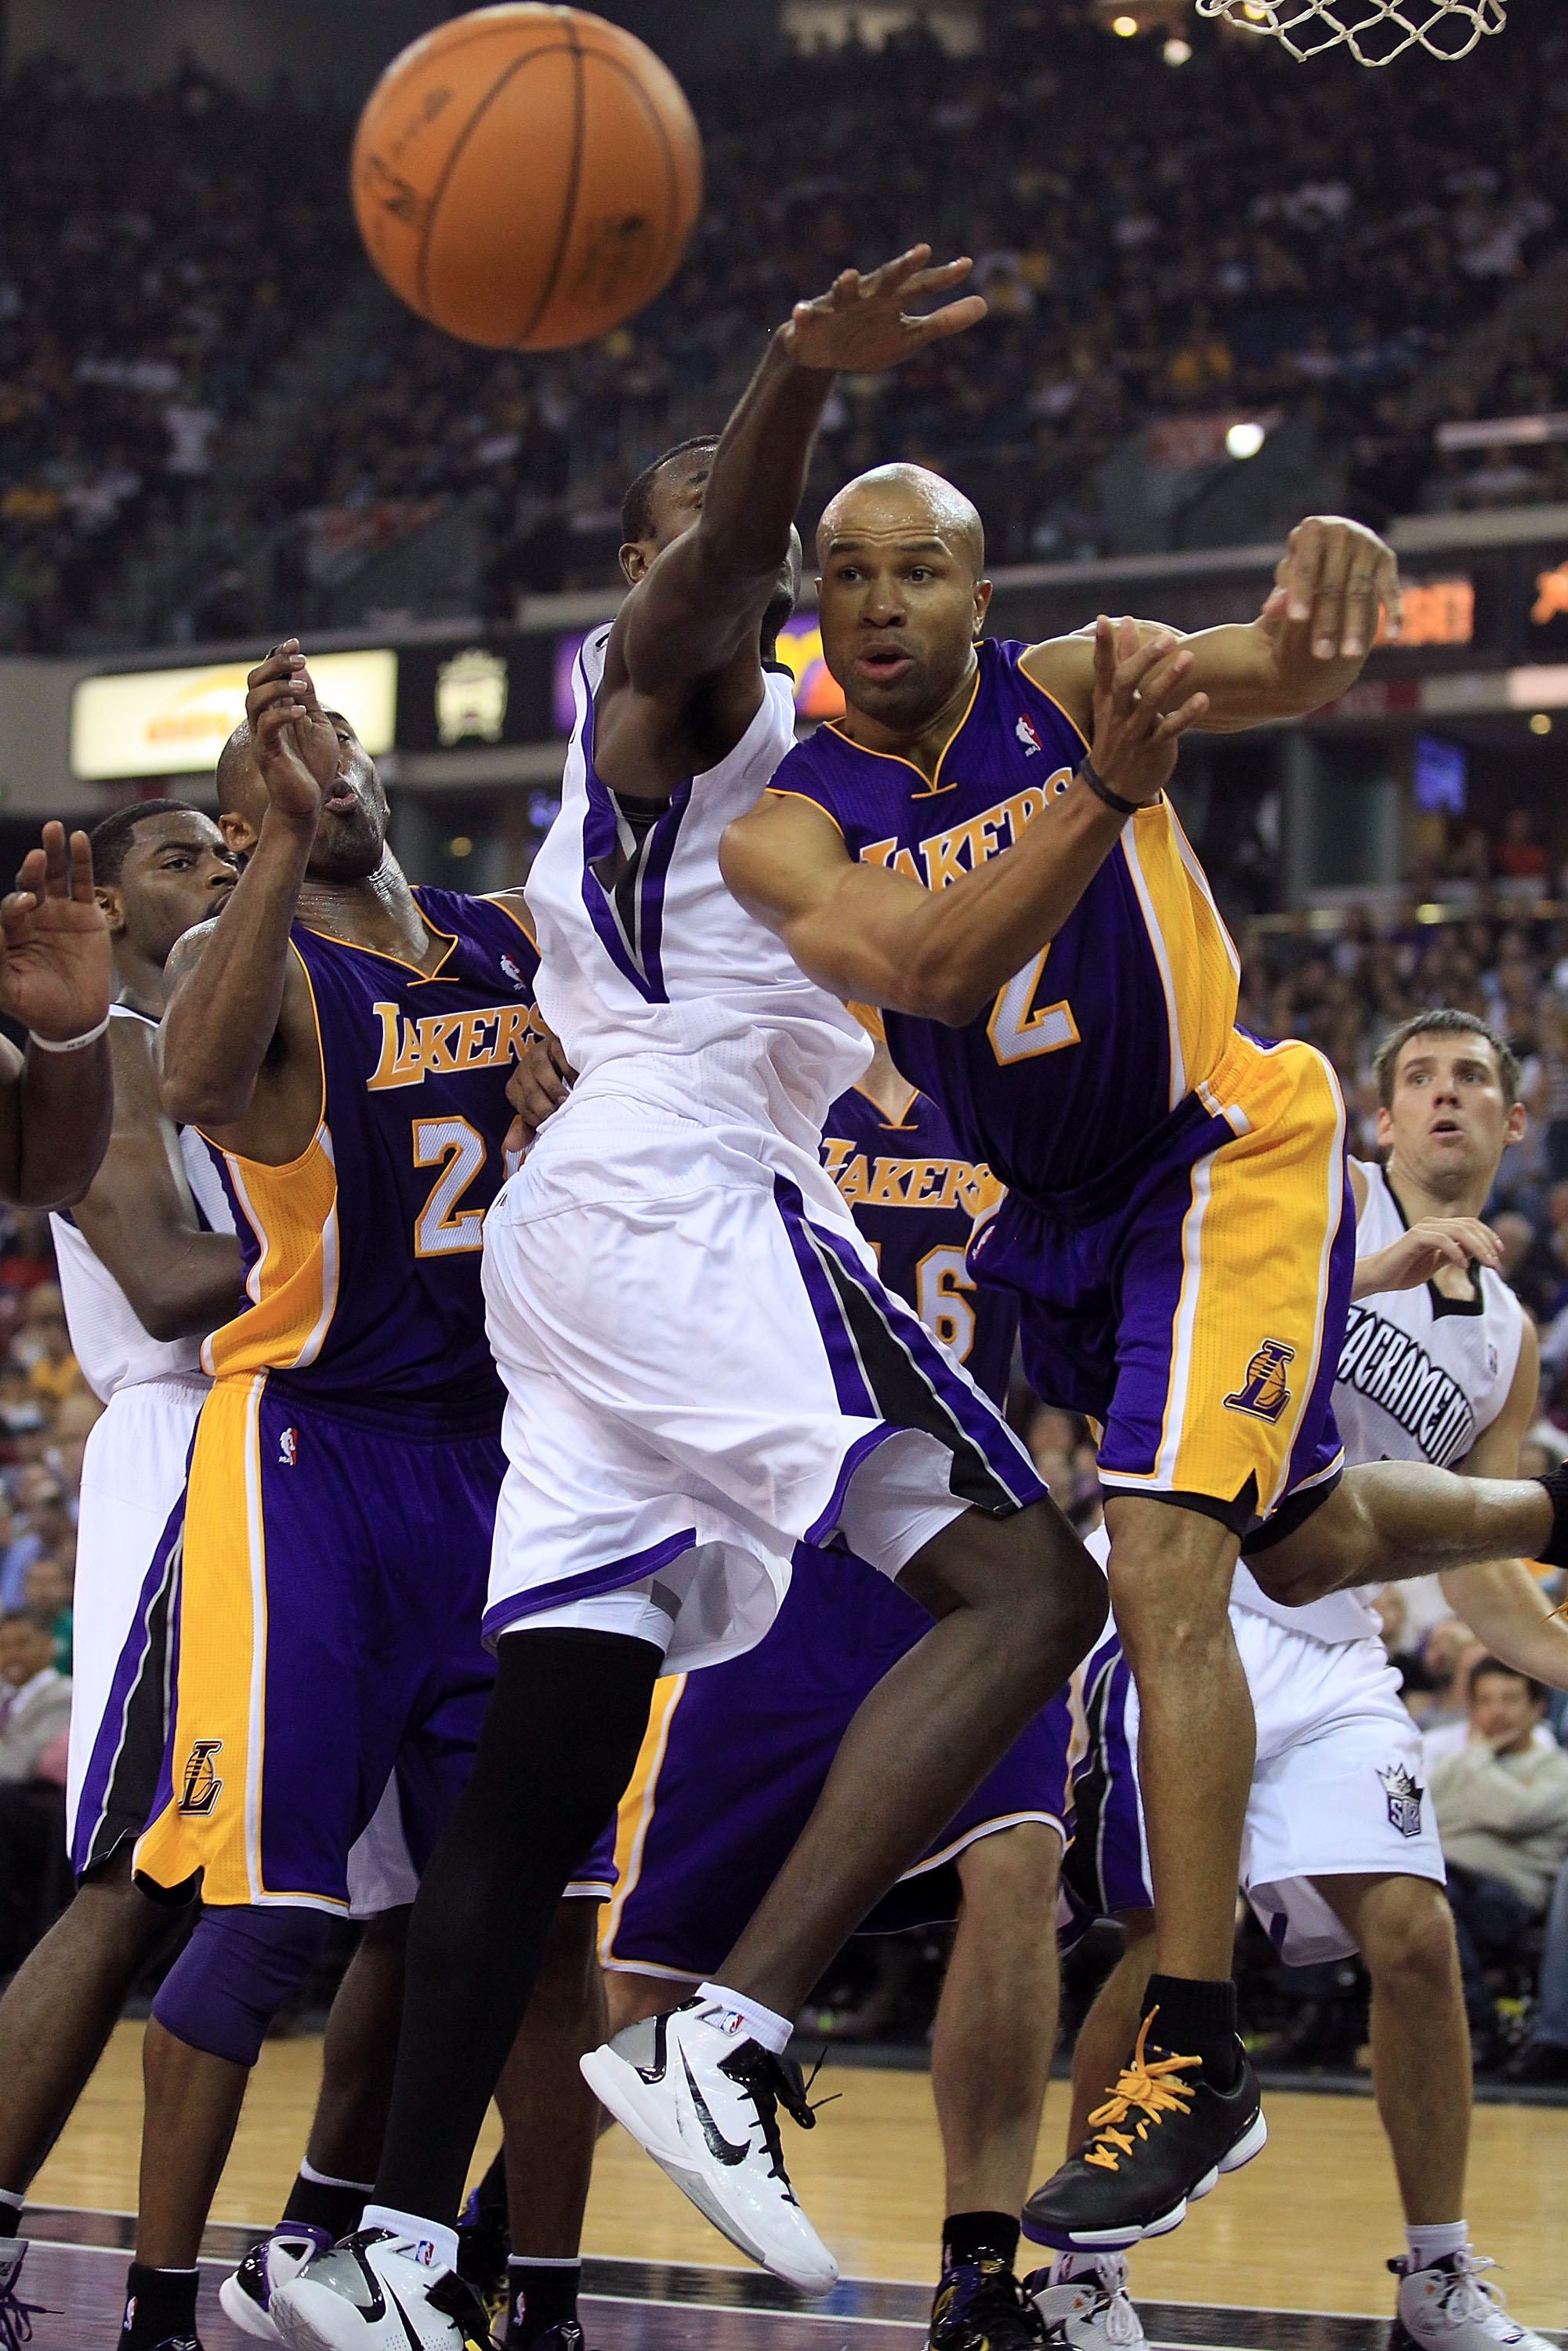 SACRAMENTO, CA - NOVEMBER 03: Derek Fisher #2 of the Los Angeles Lakers passes the ball during their game against the Sacramento Kings at ARCO Arena on November 3, 2010 in Sacramento, California.  NOTE TO USER: User expressly acknowledges and agrees that,